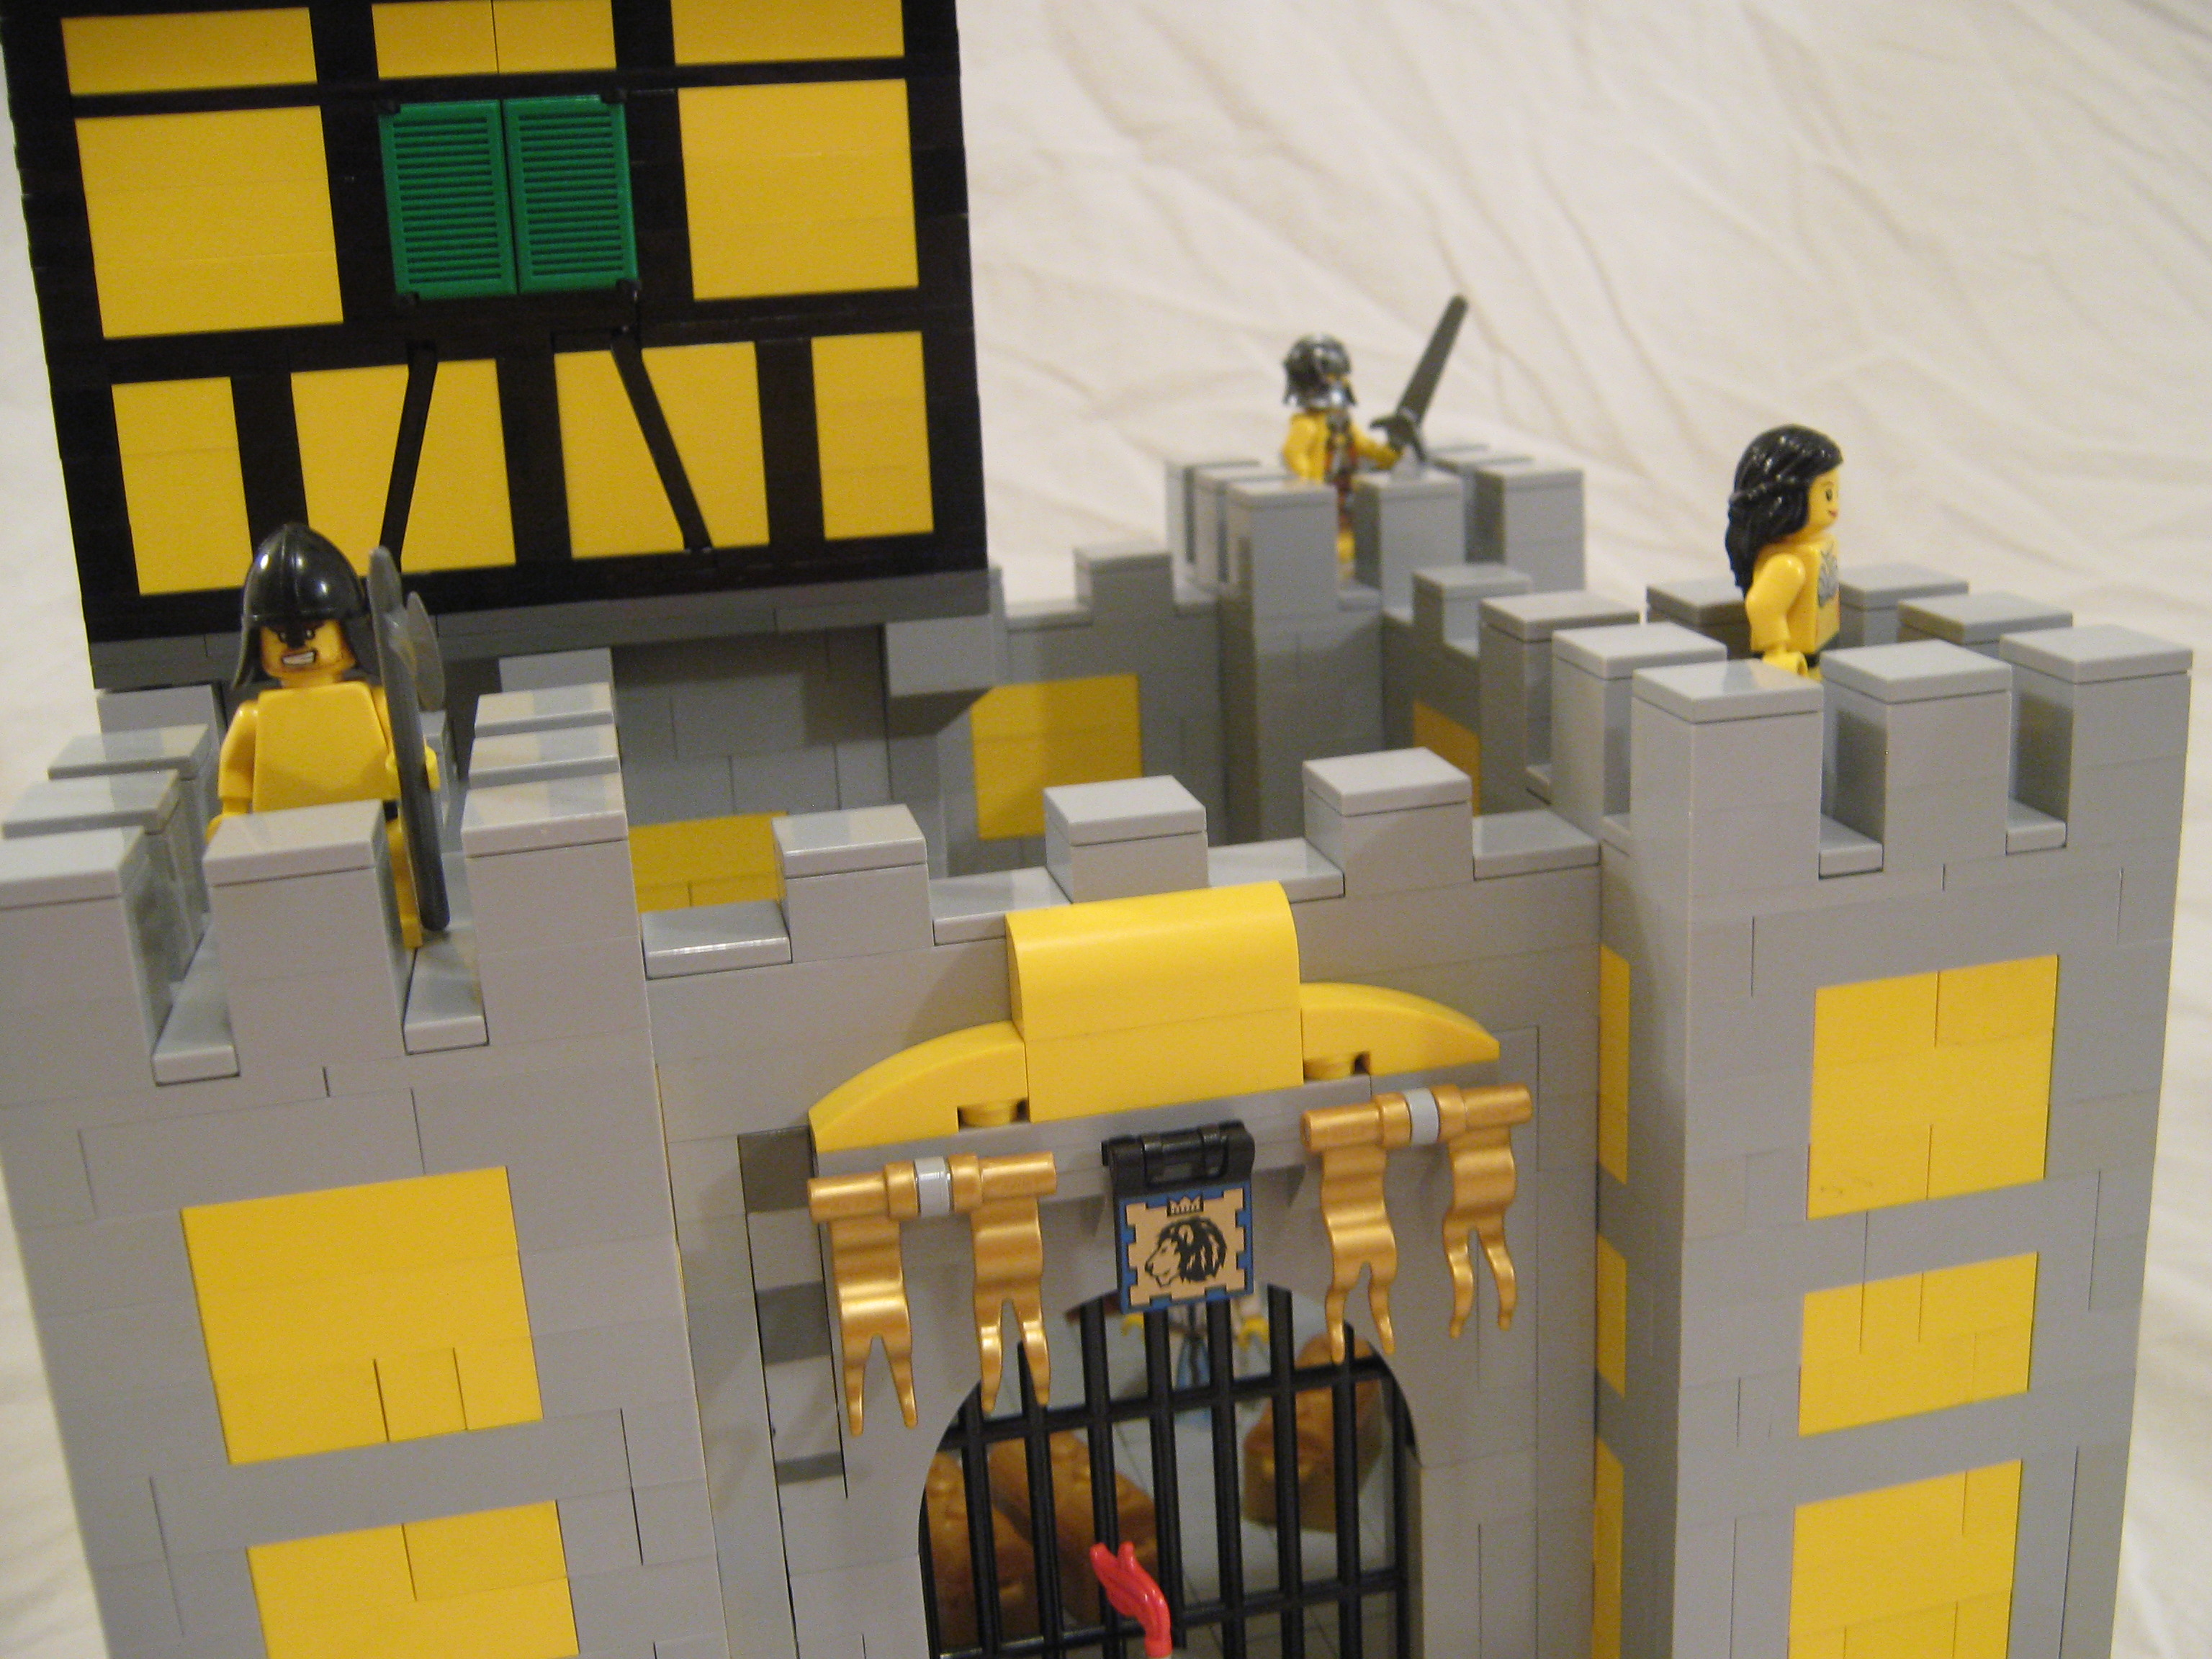 yellow_castle_011.jpg